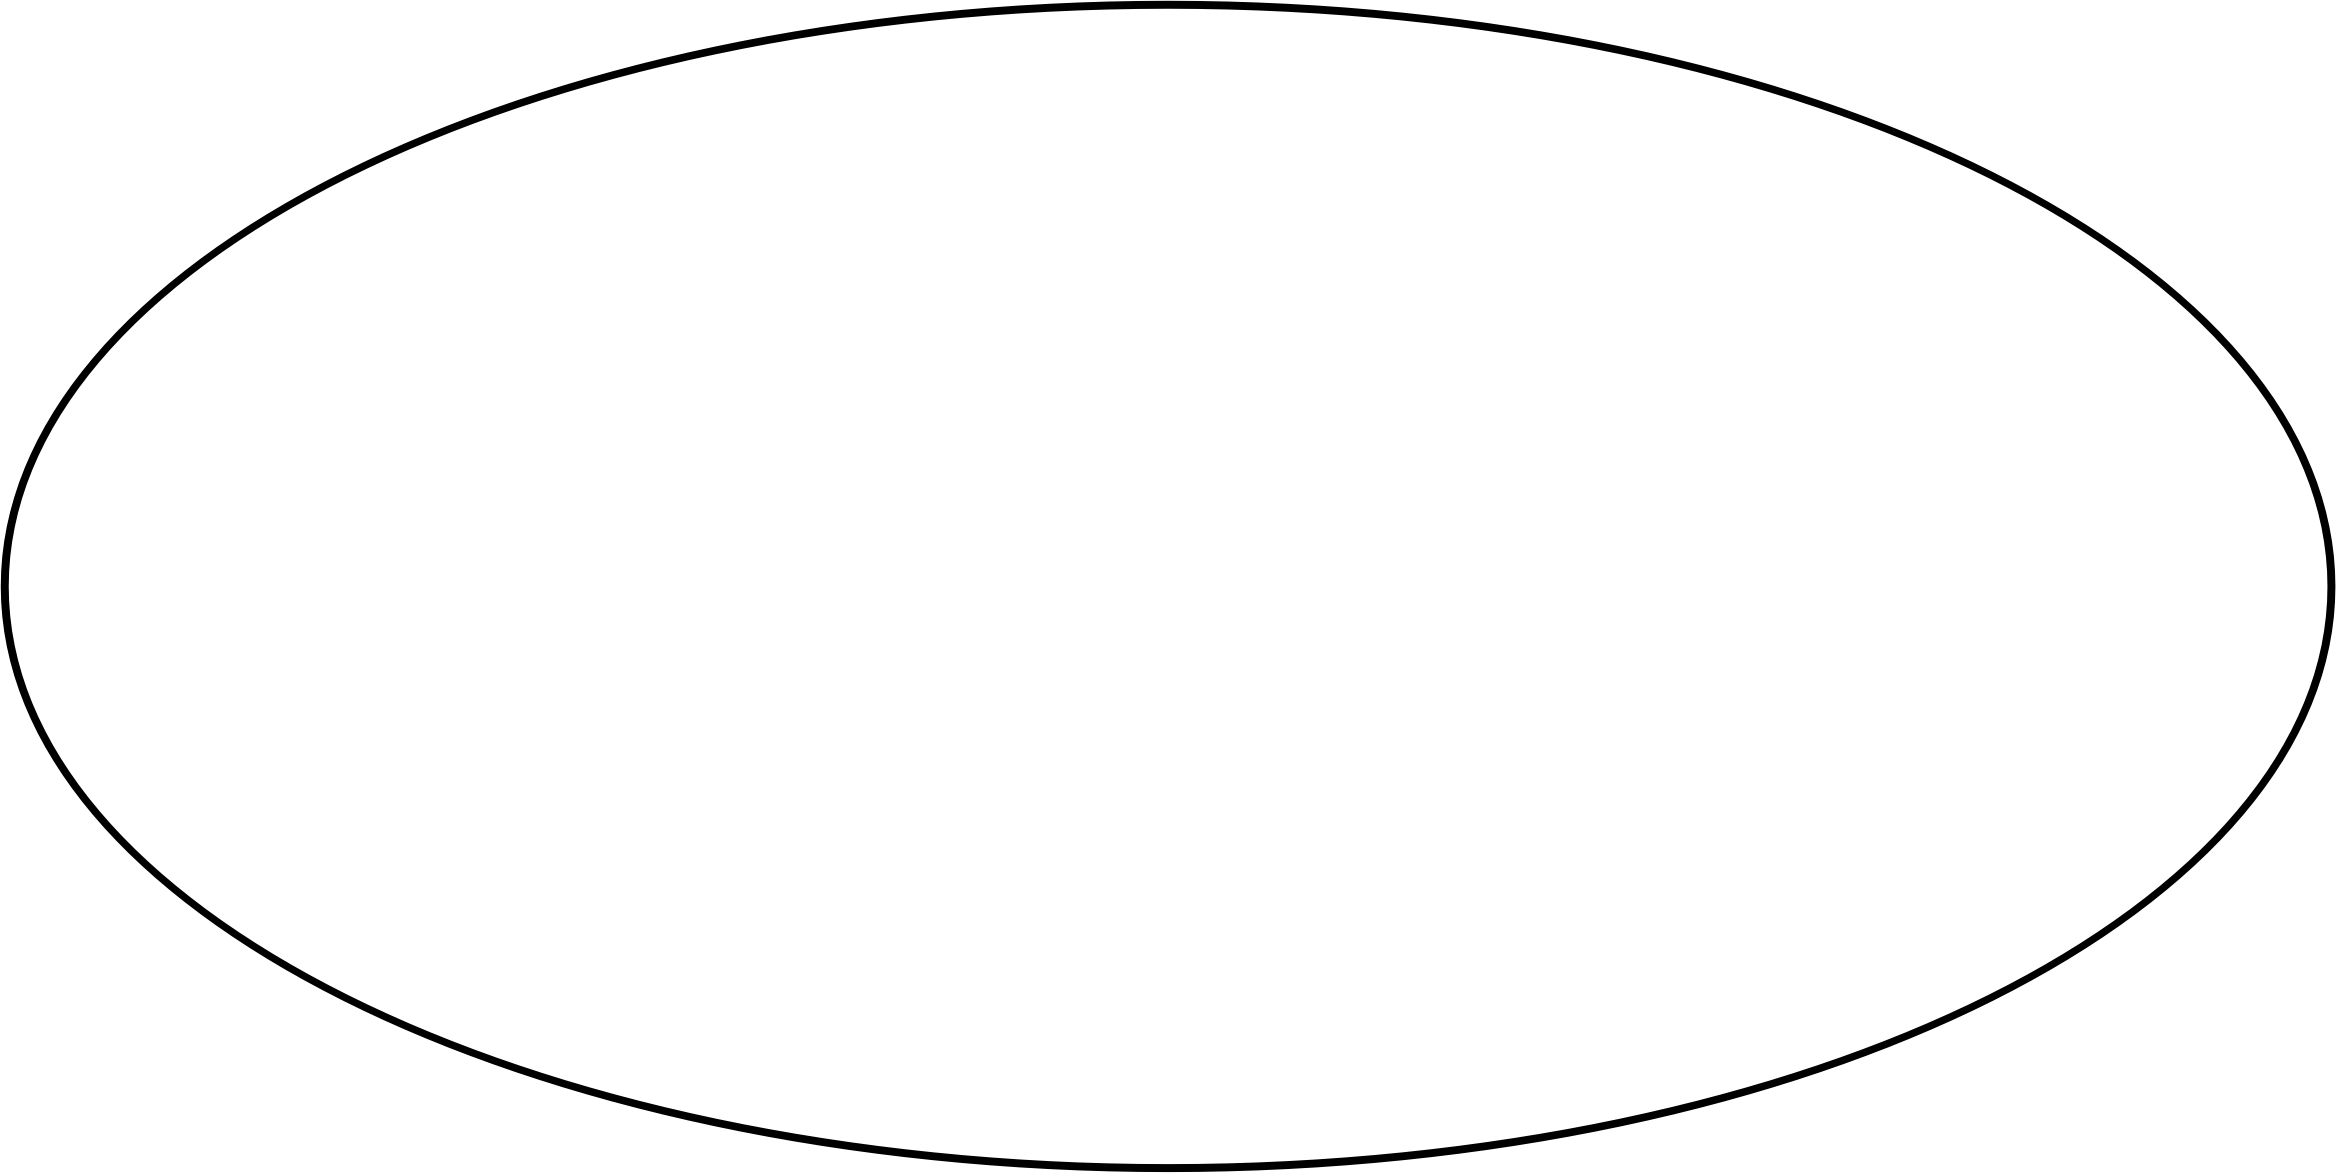 Oval Transparent PNG Image - Oval PNG Black And White